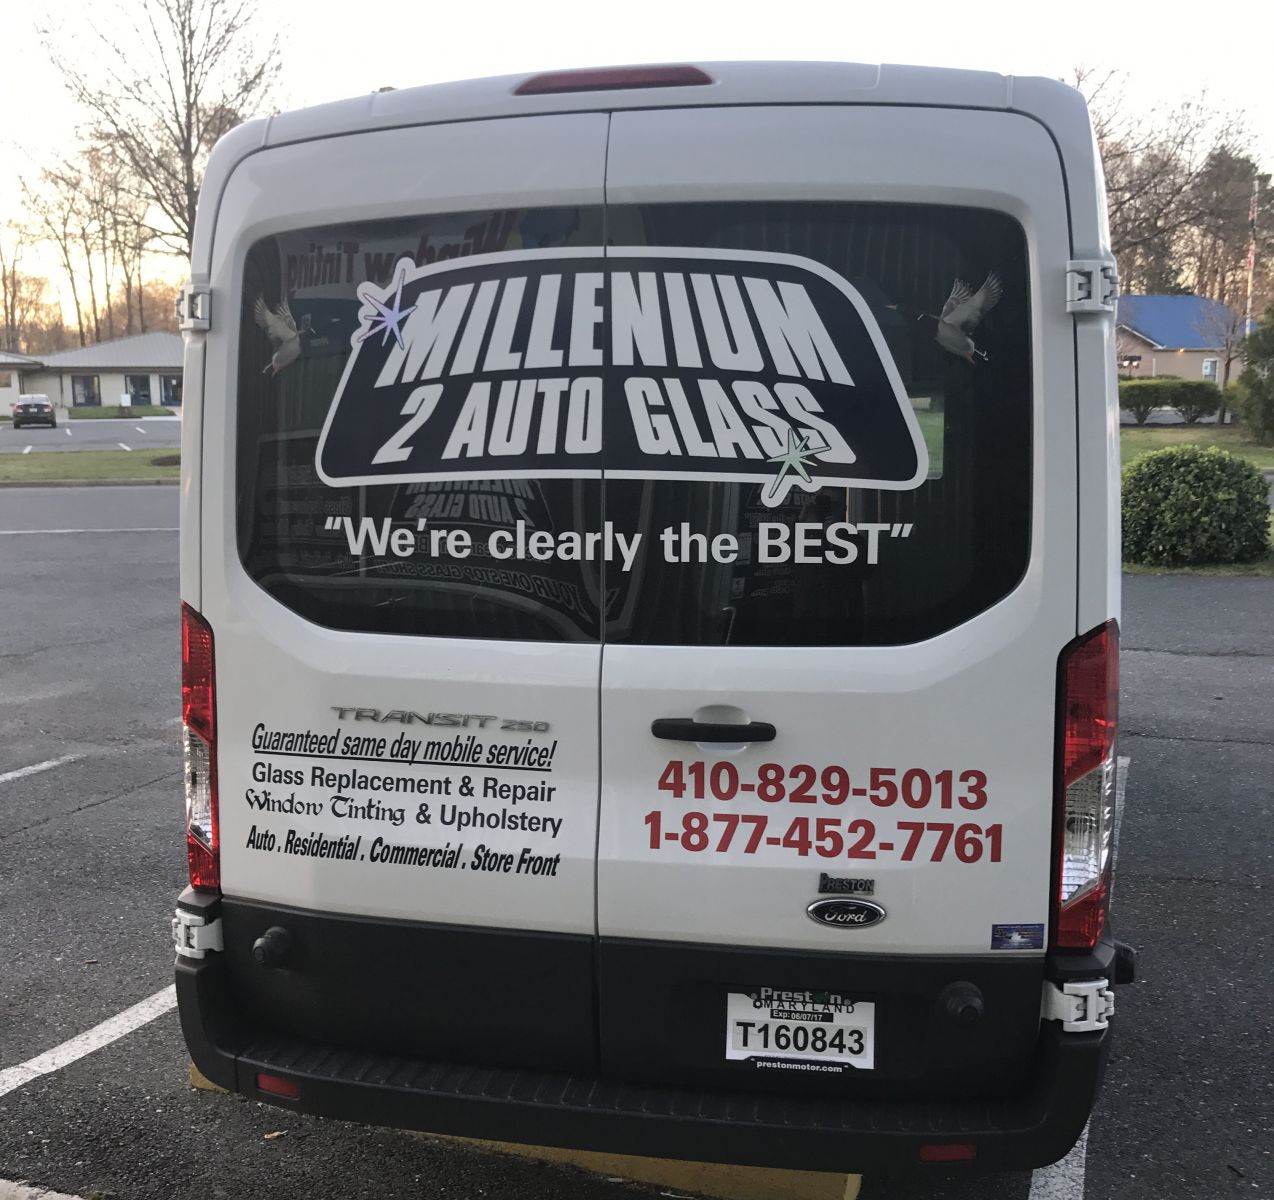 Auto Glass Quote Adorable Millenium 2 Auto Glass Quote Request